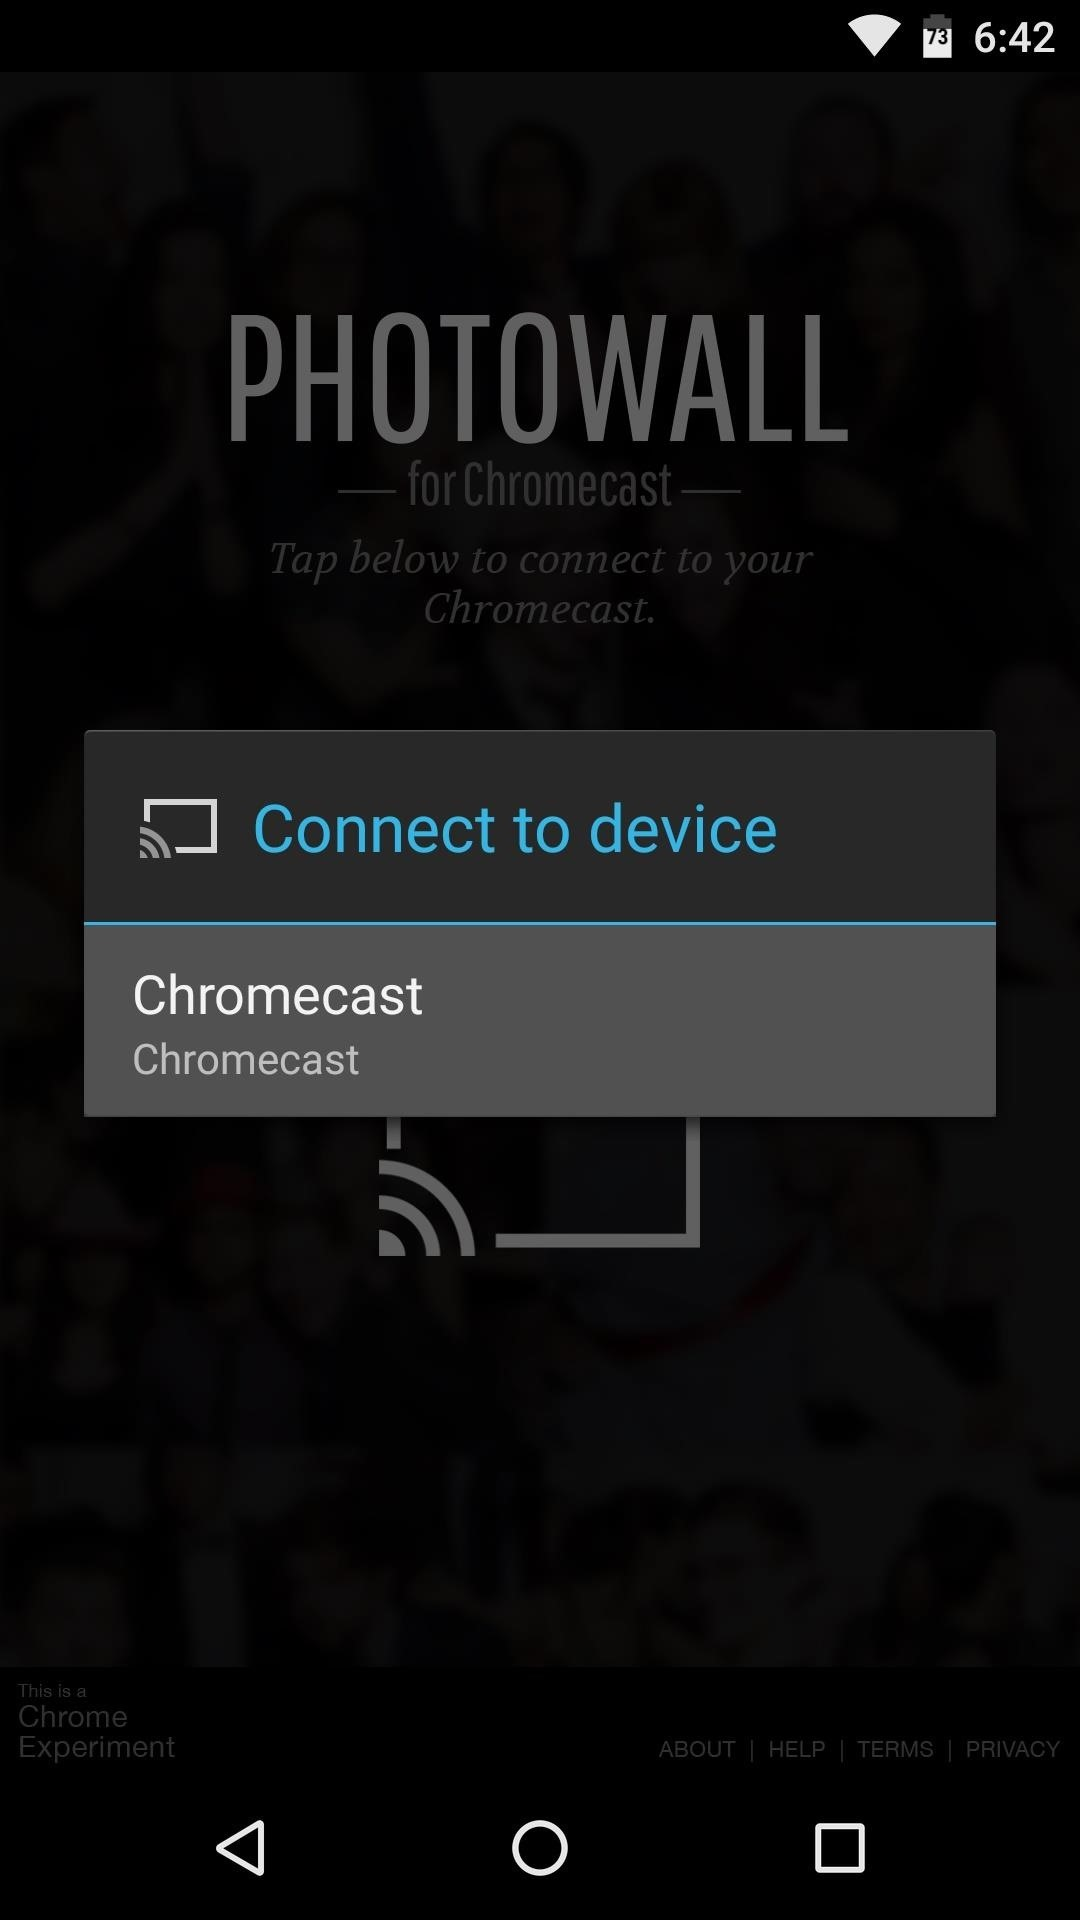 install the app once connected users can take pictures which will immediately be displayed on the chromecast when youre done your partys